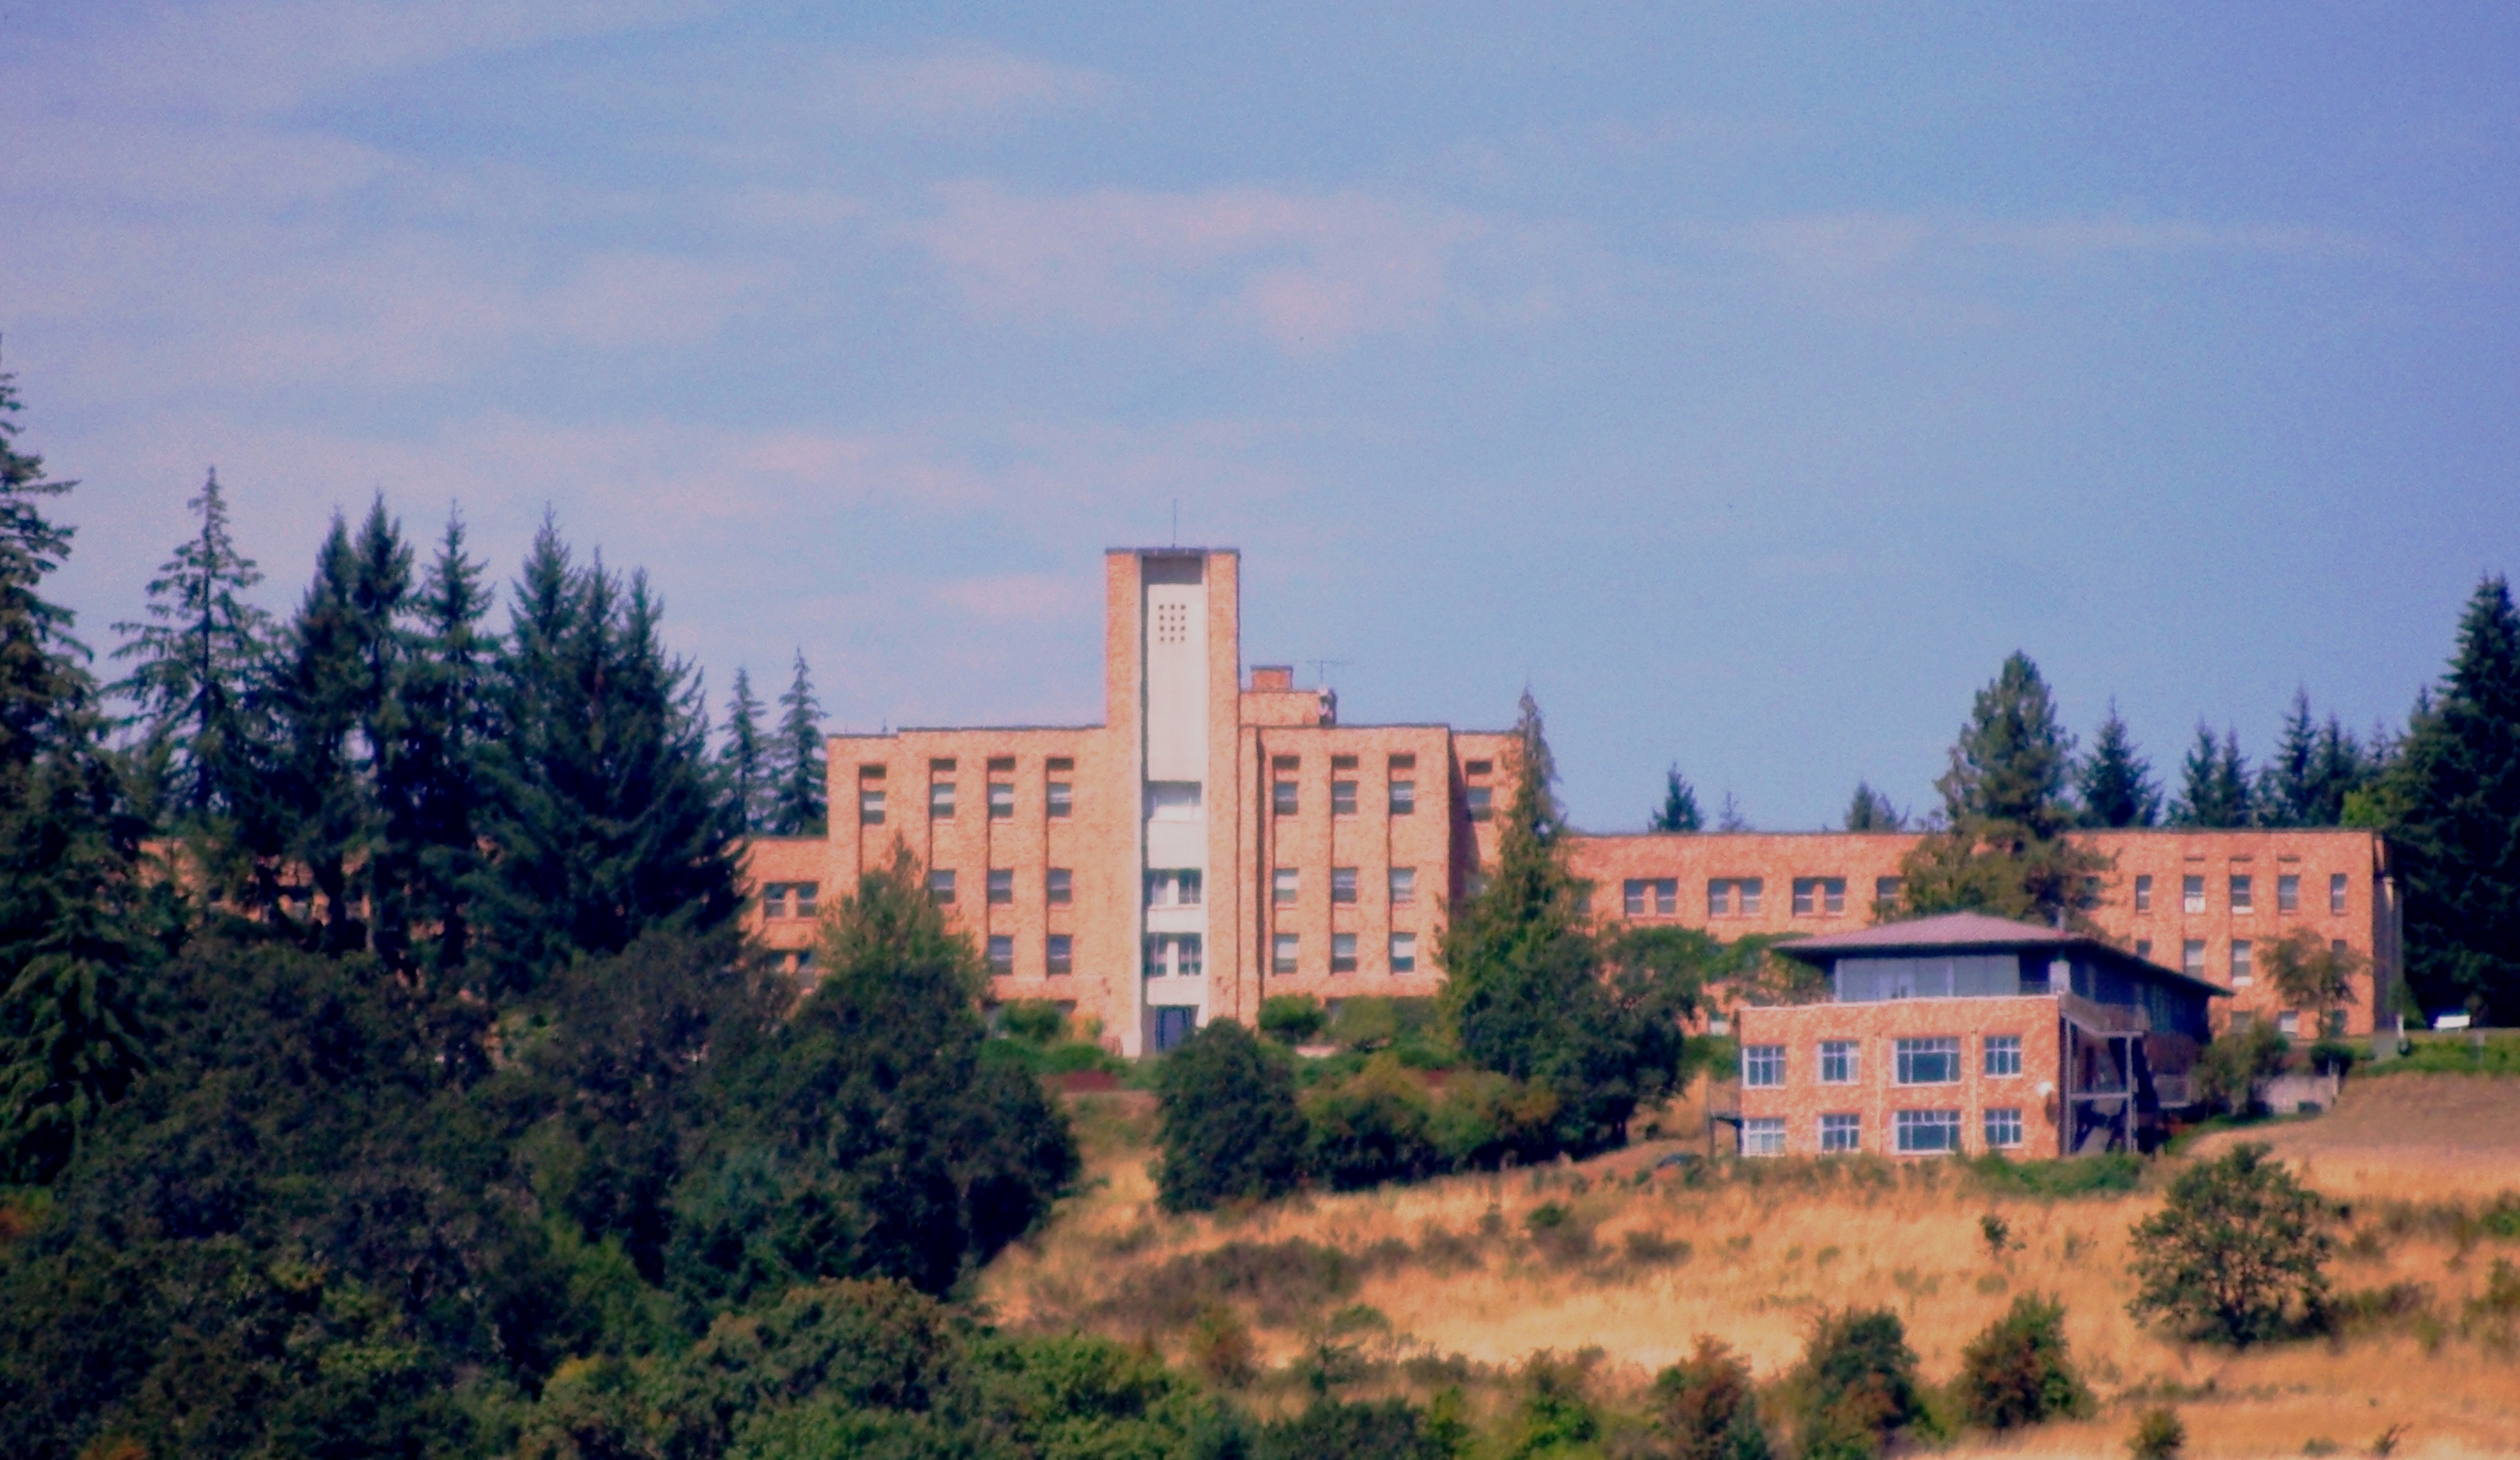 The_Delphian_School_in_Sheridan,_Oregon